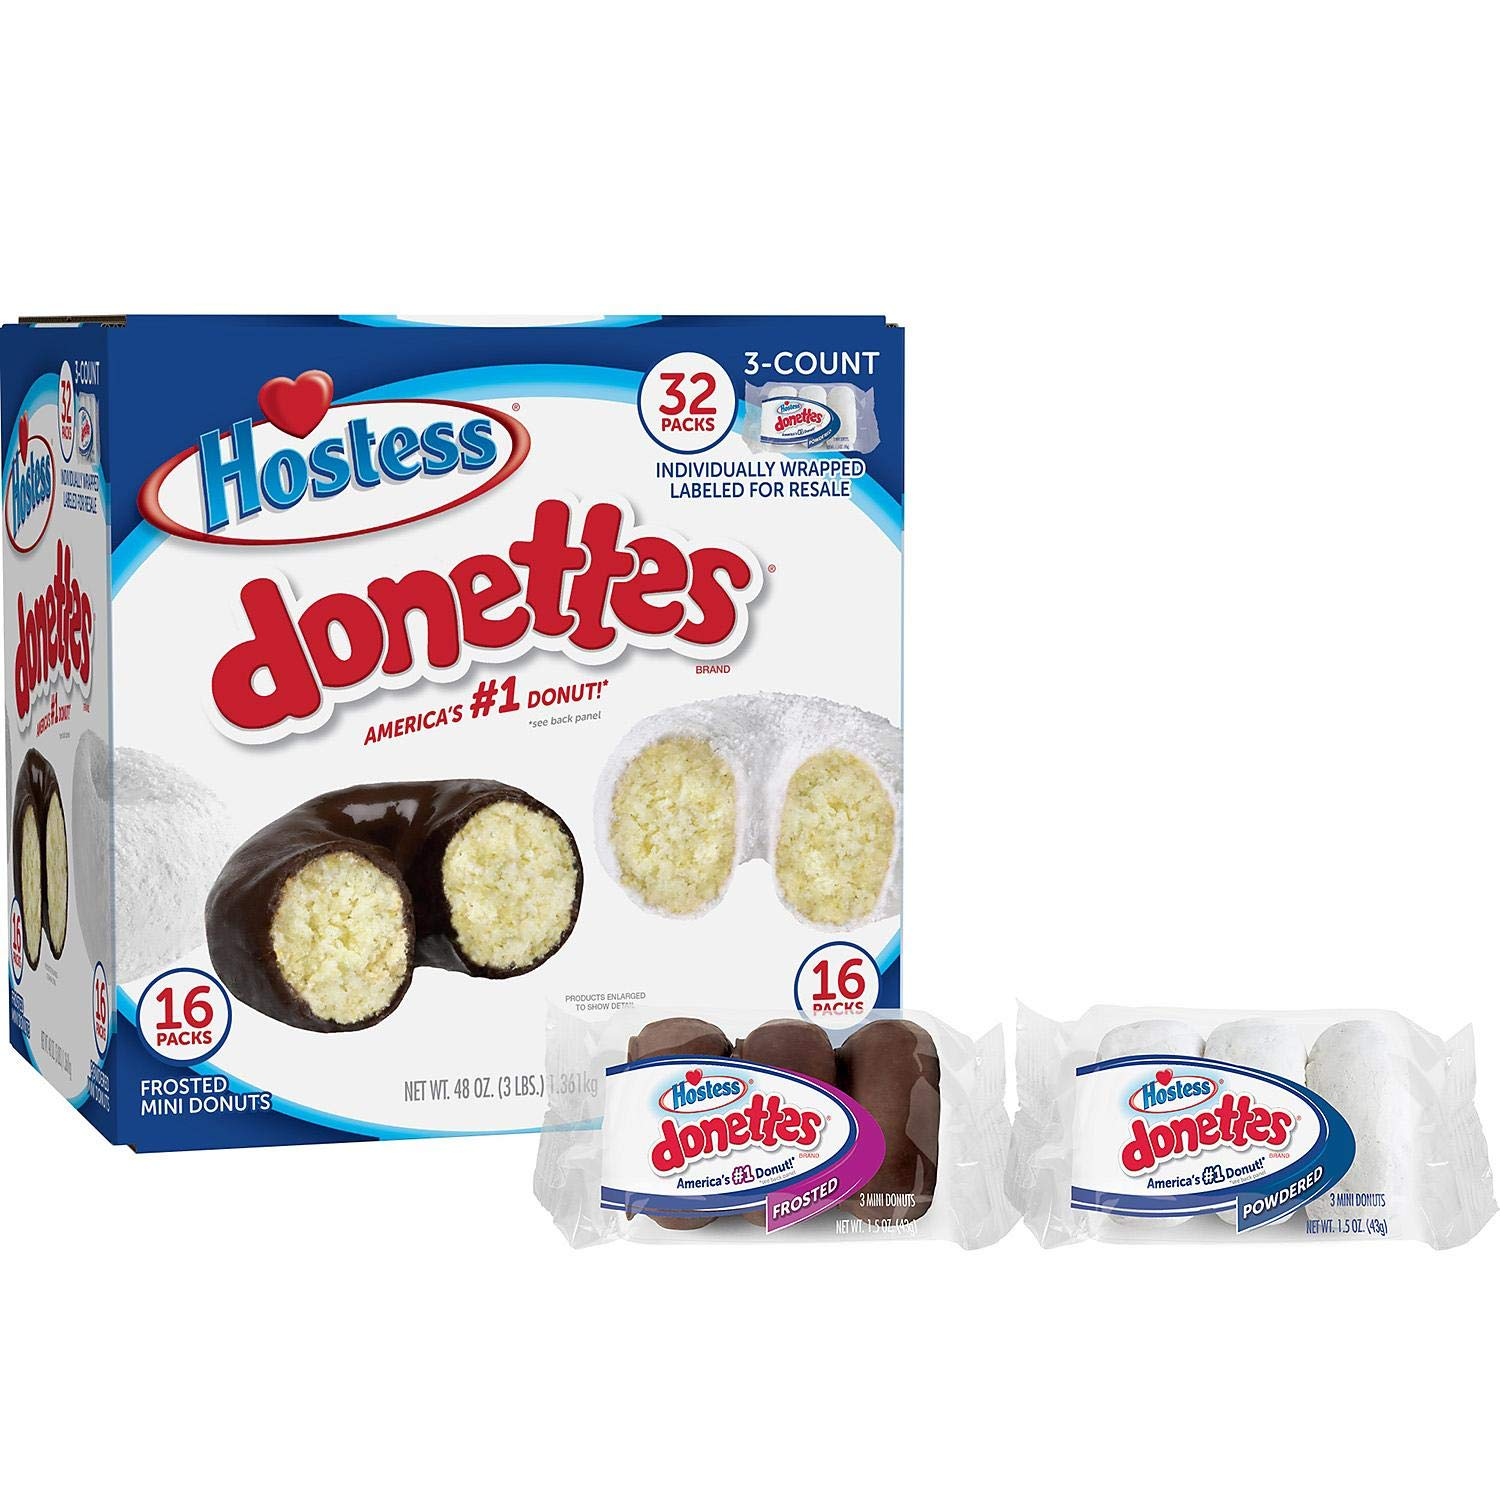 Hostess Donettes, 32 Pack by Hot Deals Warehouse